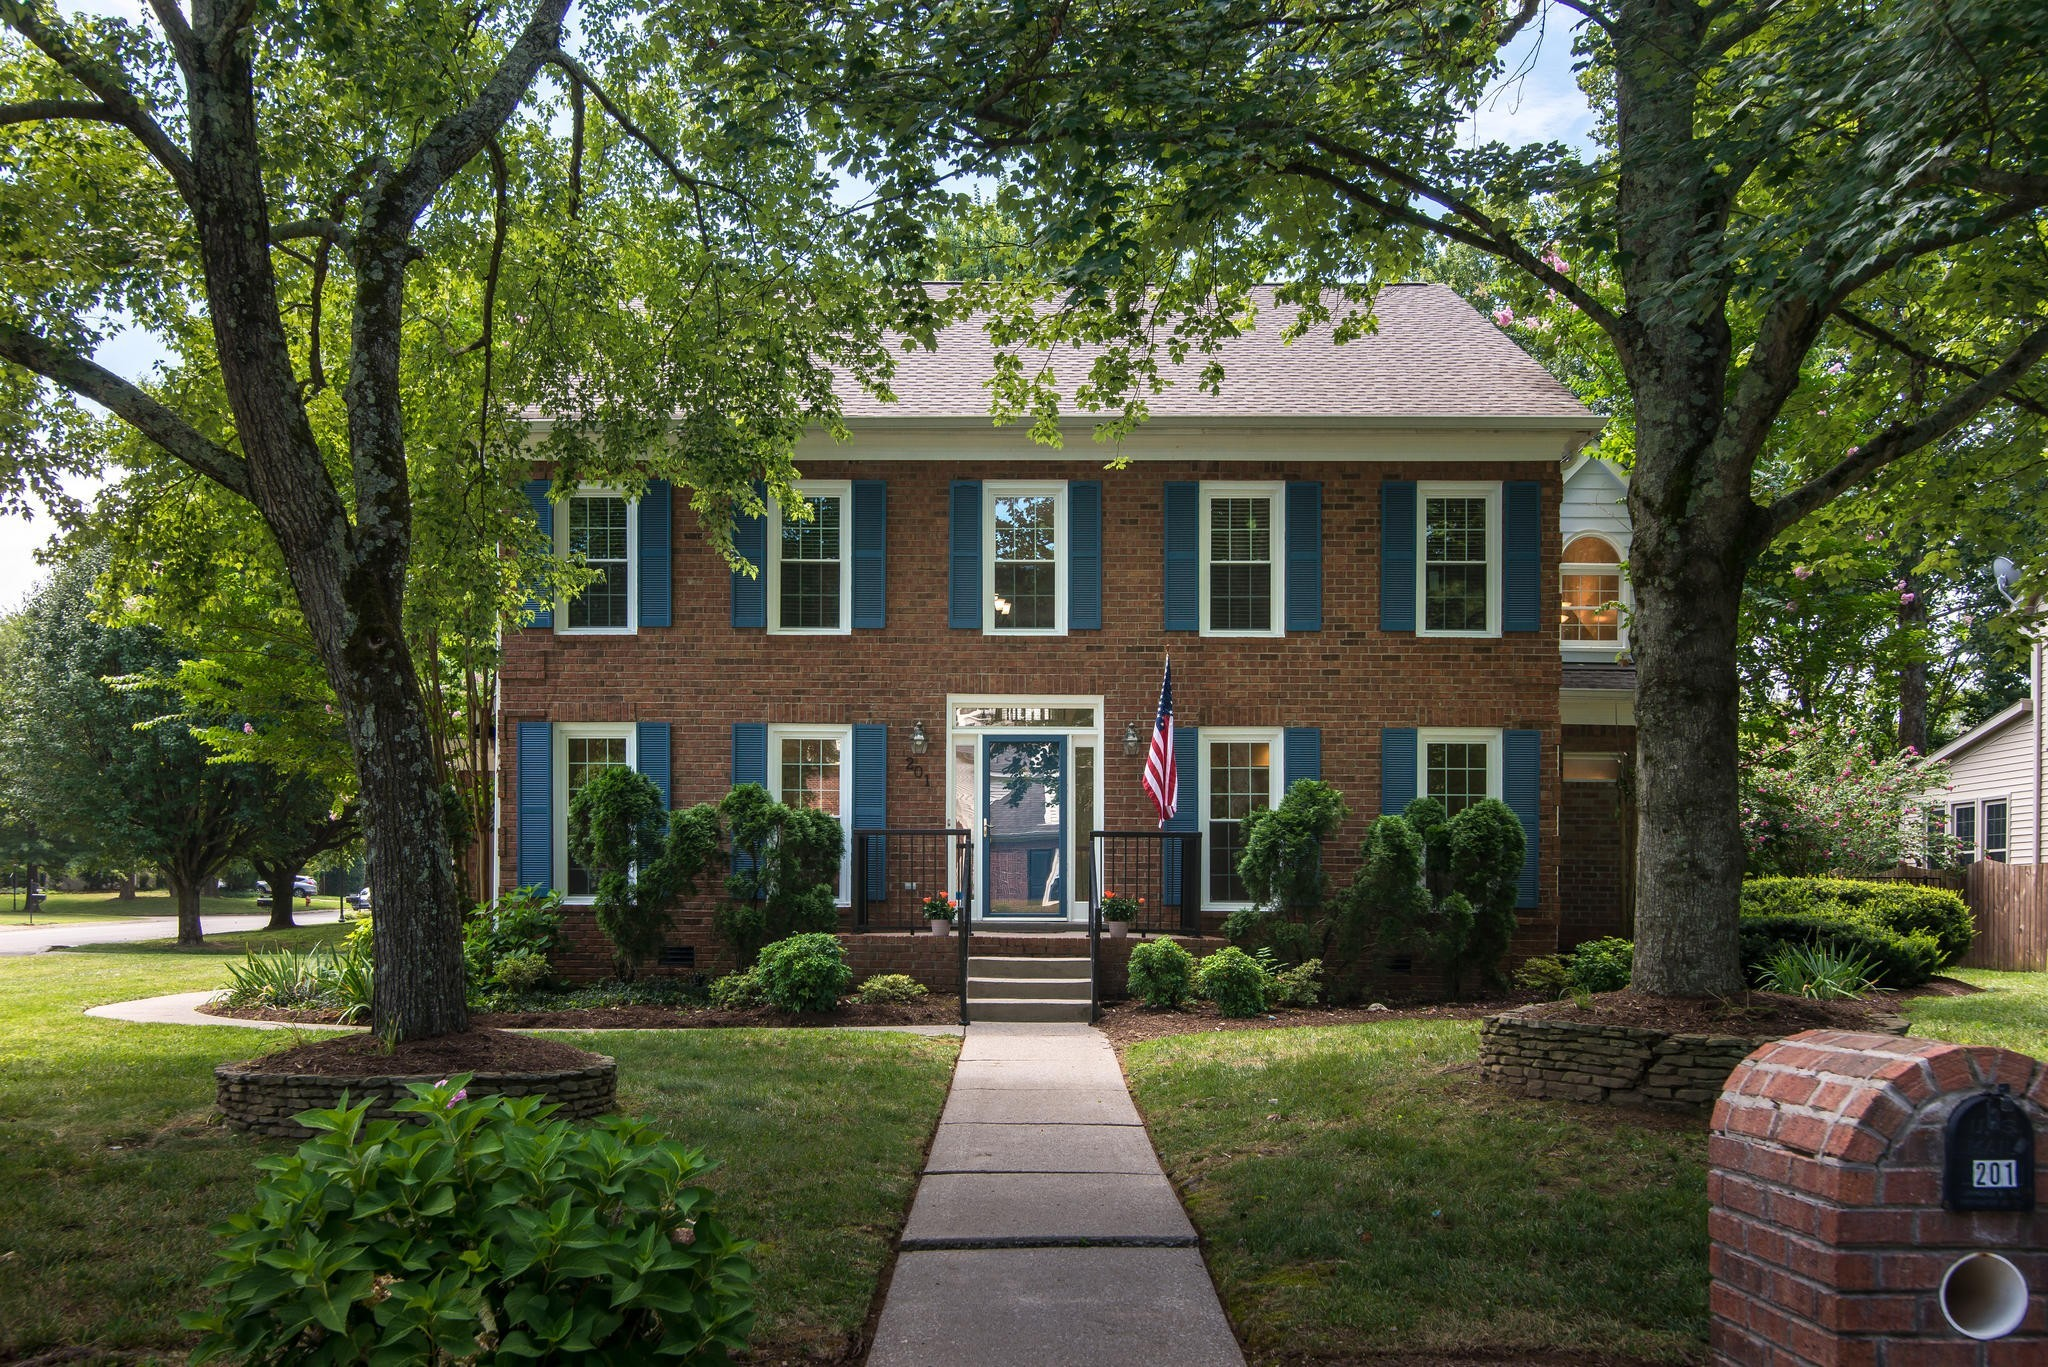 New roof, new gutters and downspouts, new gas furnace, new windows, fresh paint, remodeled master bath and kitchen and custom master closet. Home is huge and could easily accommodate two home offices, homeschool room and more.